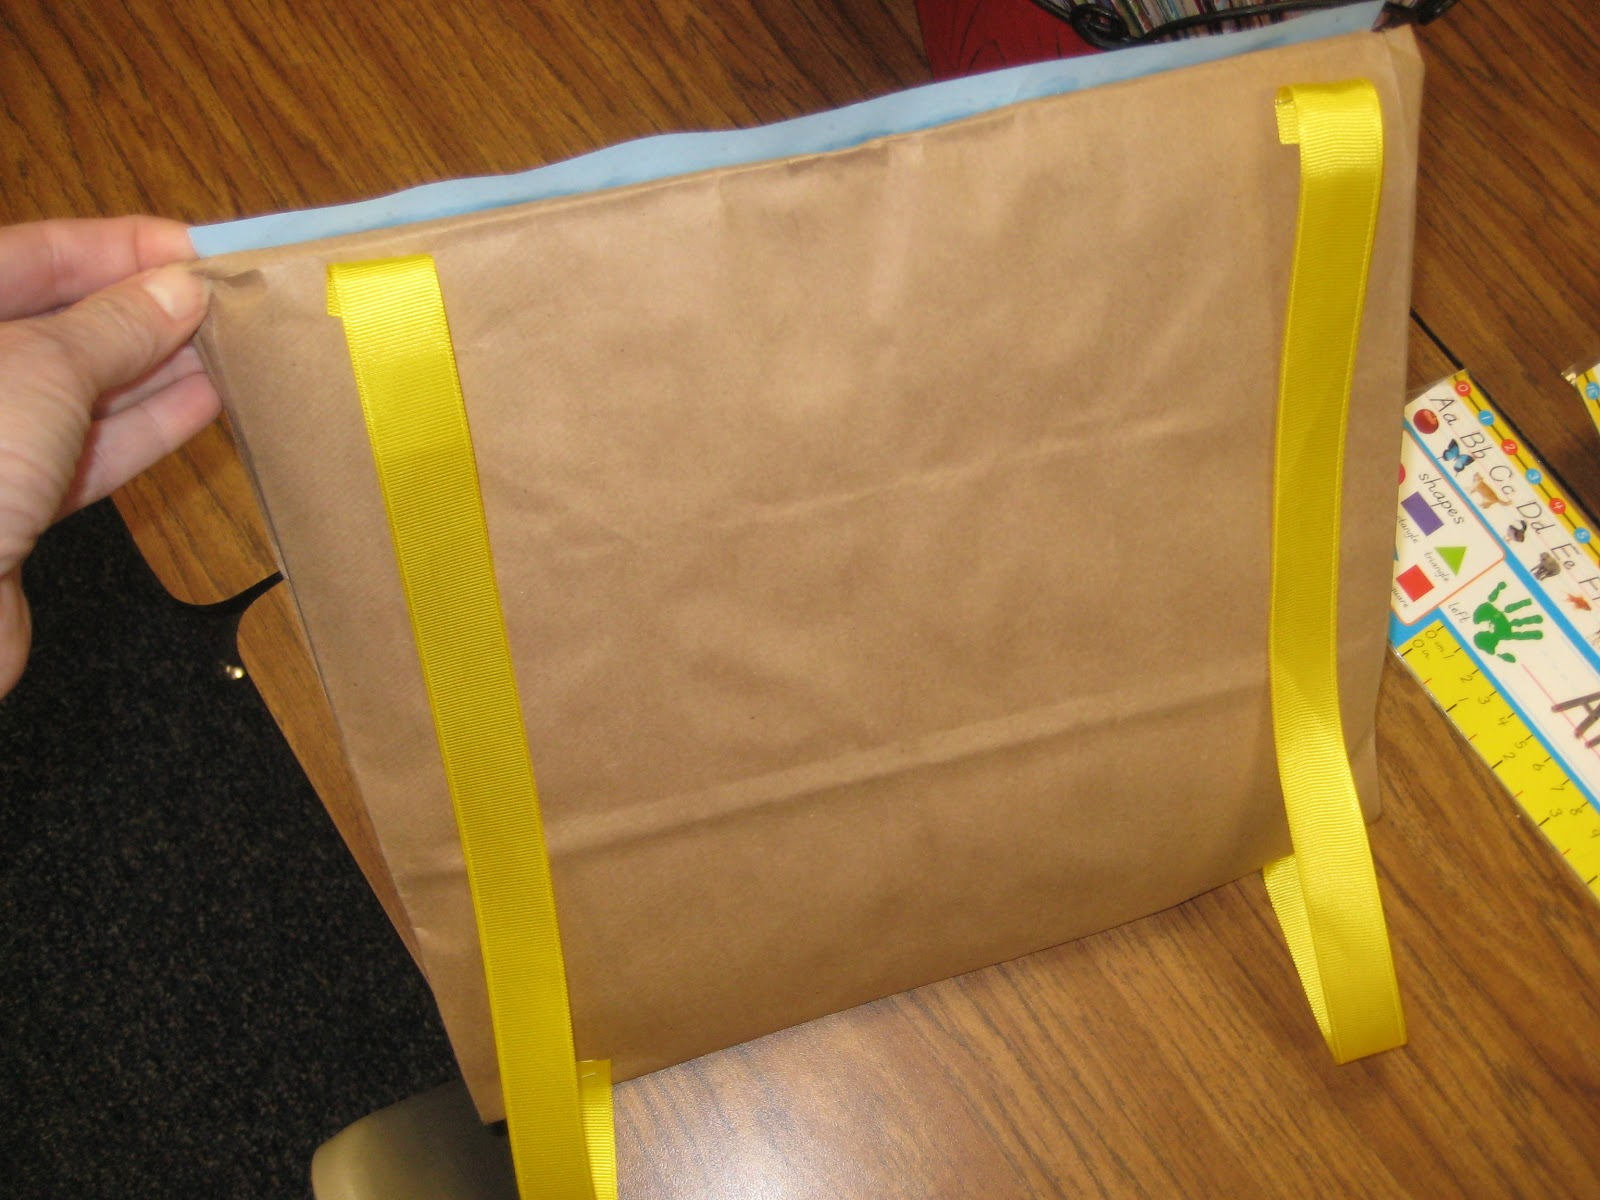 book report in a bag first grade The other first grade teacher approached me last week about having the students complete a book report at home she thought a paper bag book report would be perfect for the firsties to get their feet wet in the world of book reports.